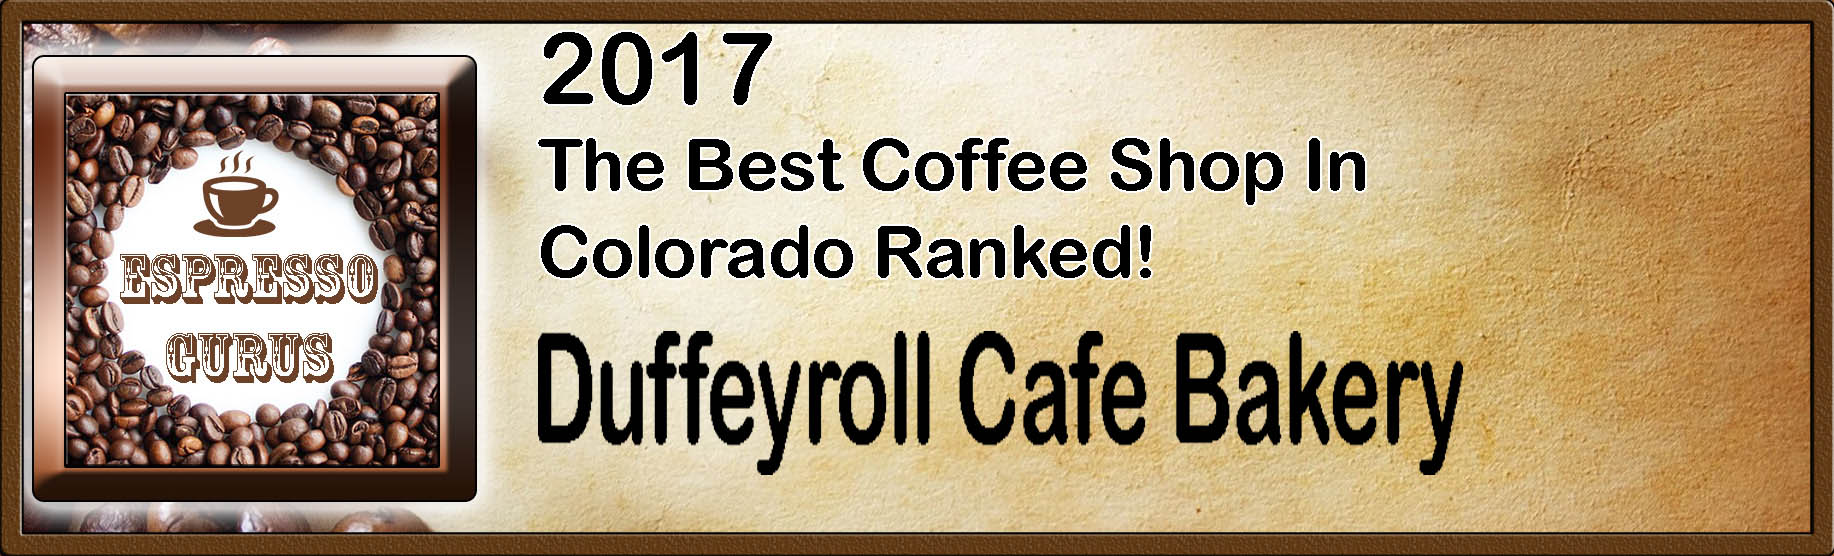 The Best Coffee Shop in Colorado Ranked 2017